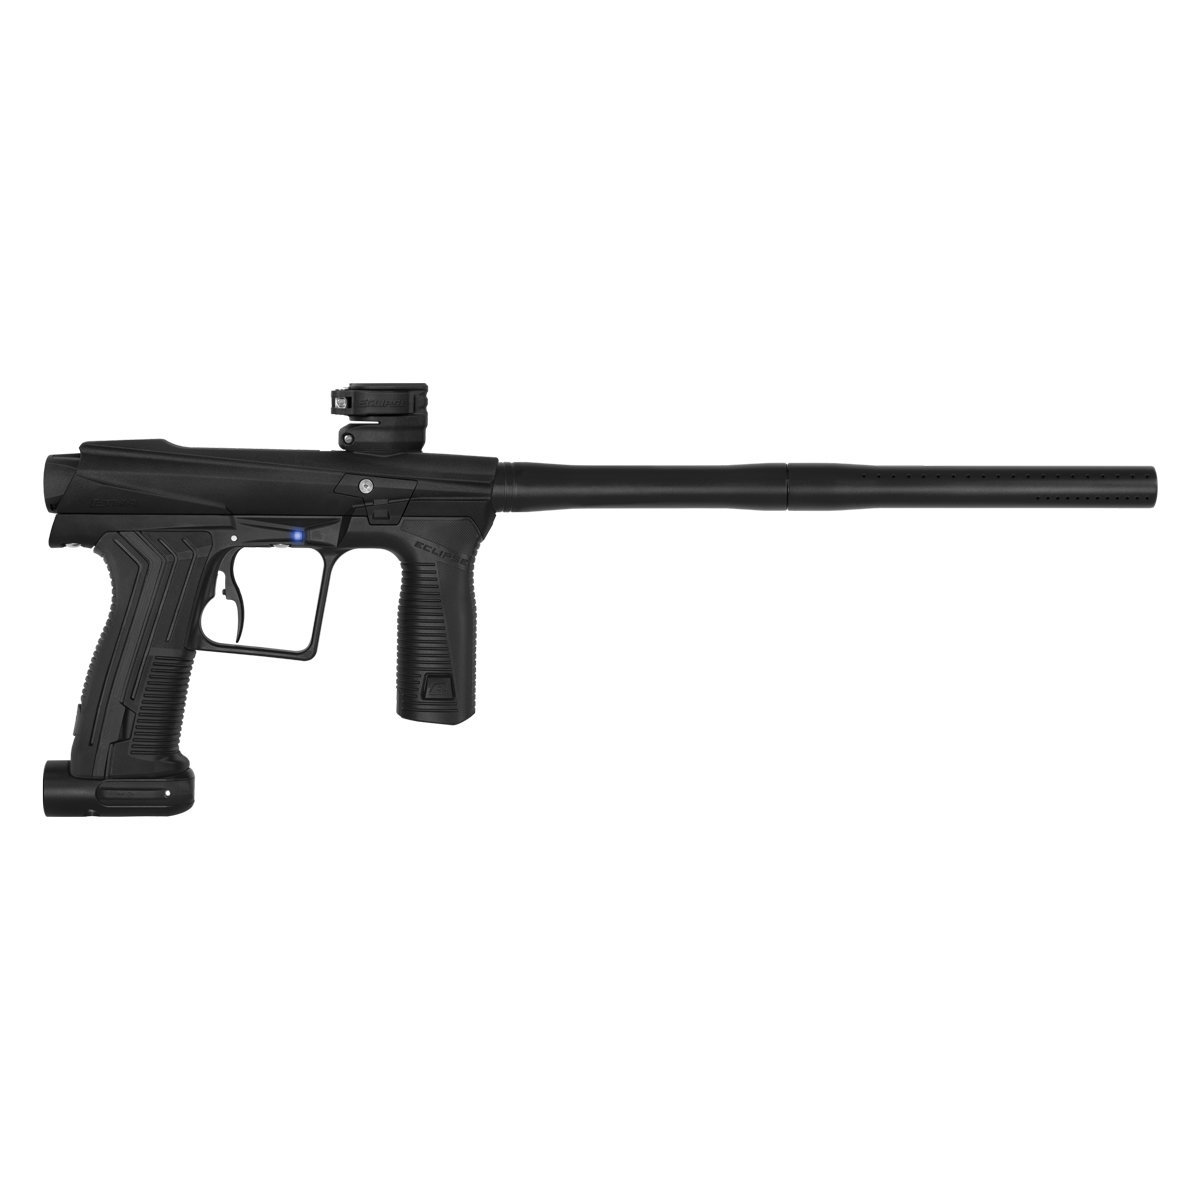 View larger image of Eclipse Etha2 PAL Paintball Gun